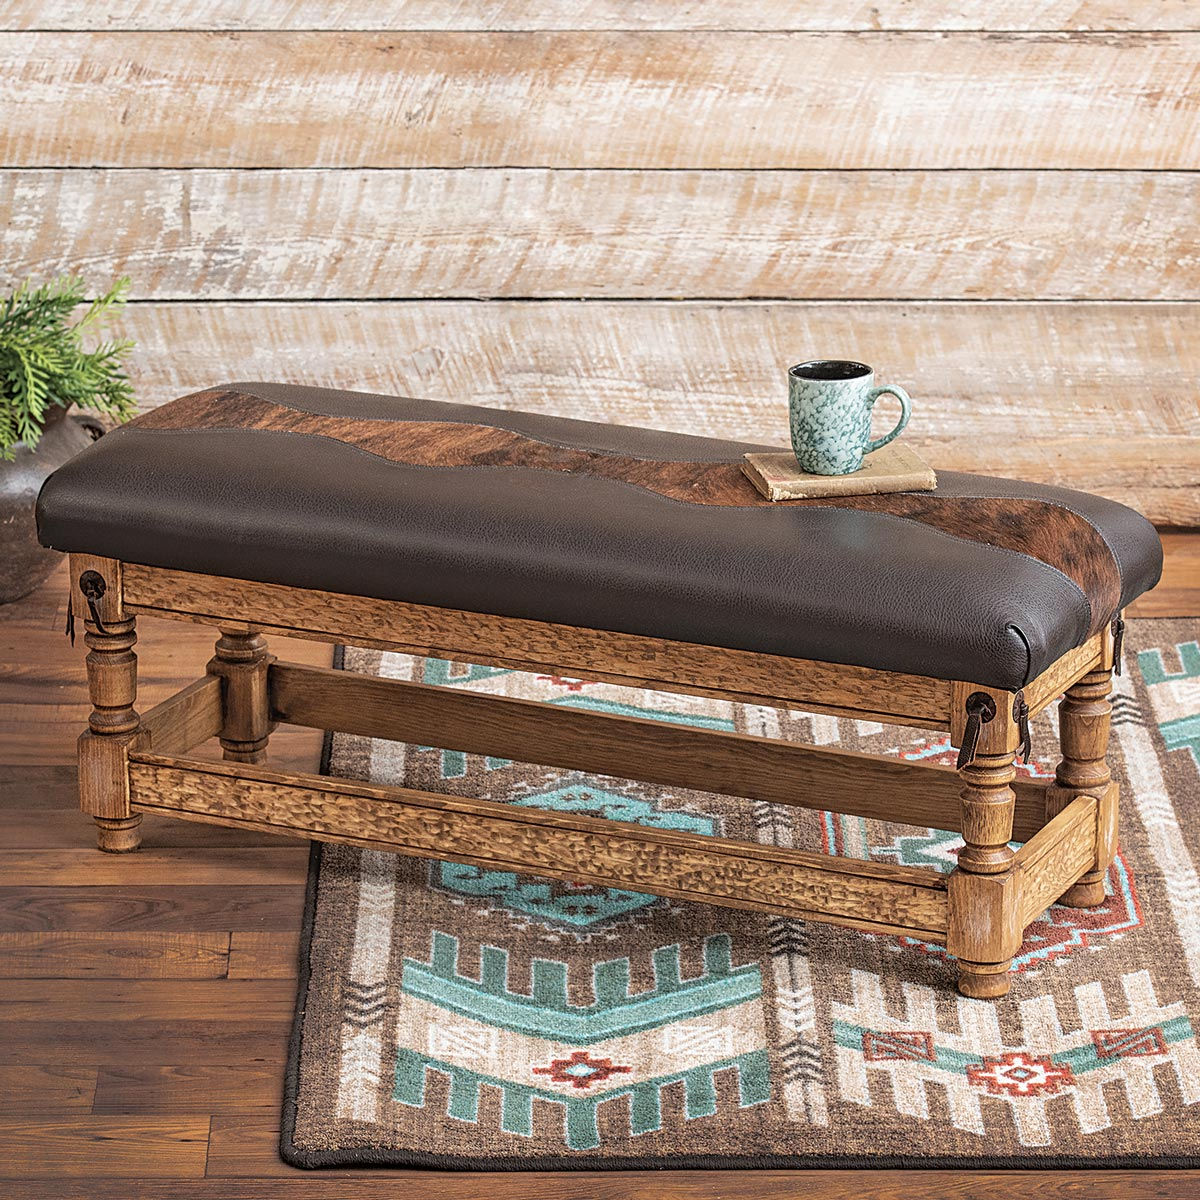 Lone Star Western Decor Chaps bench - large